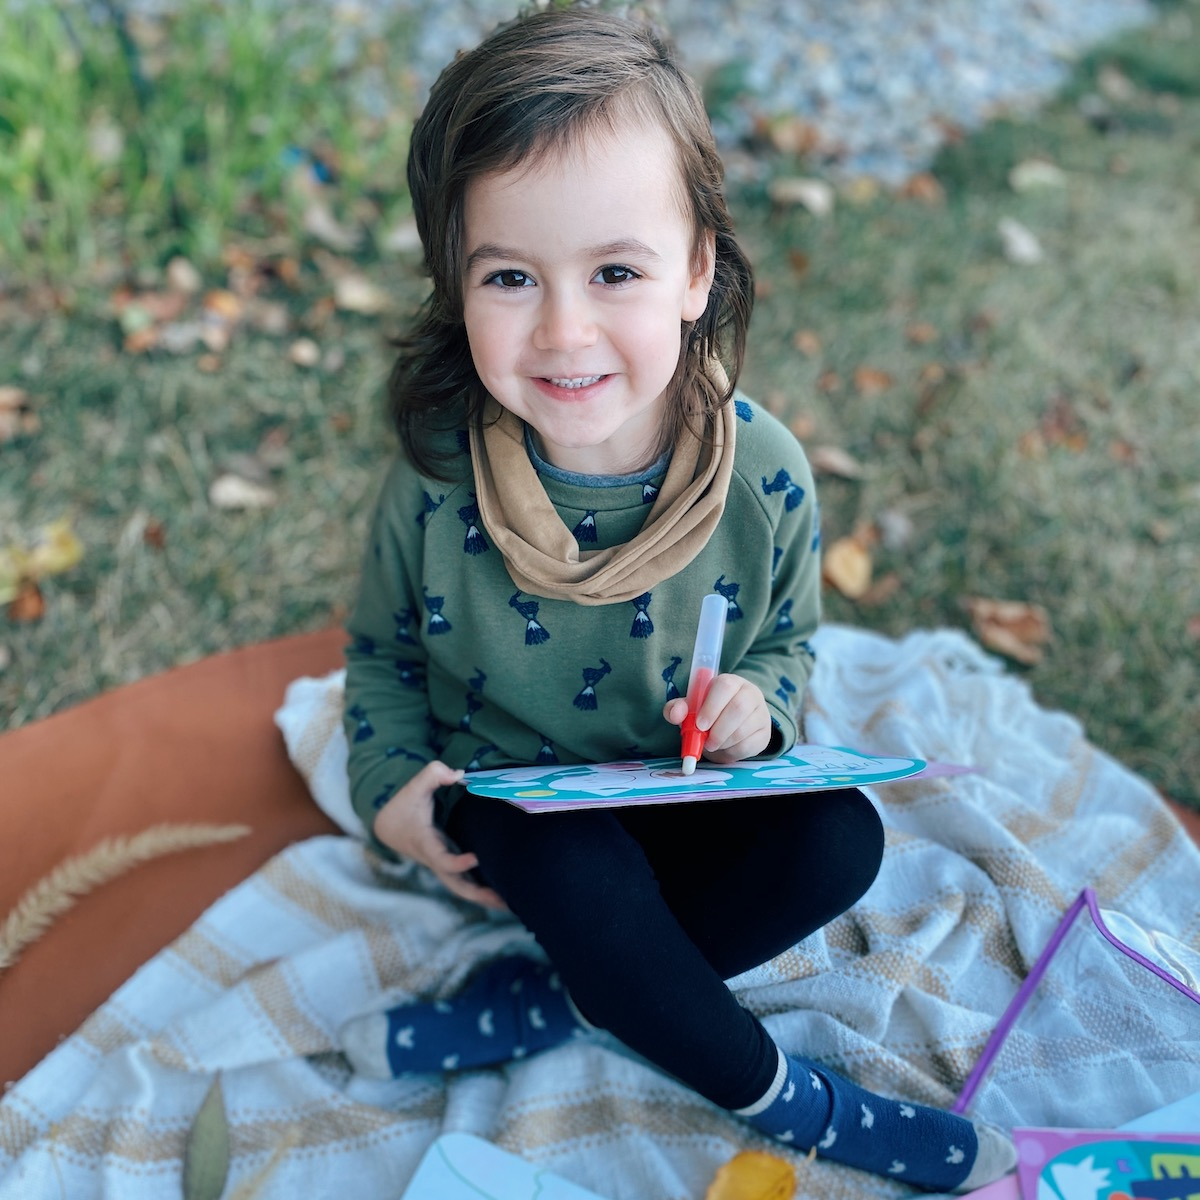 A little girl sitting on a picnic blanket outdoors coloring with a Djeco coloring book